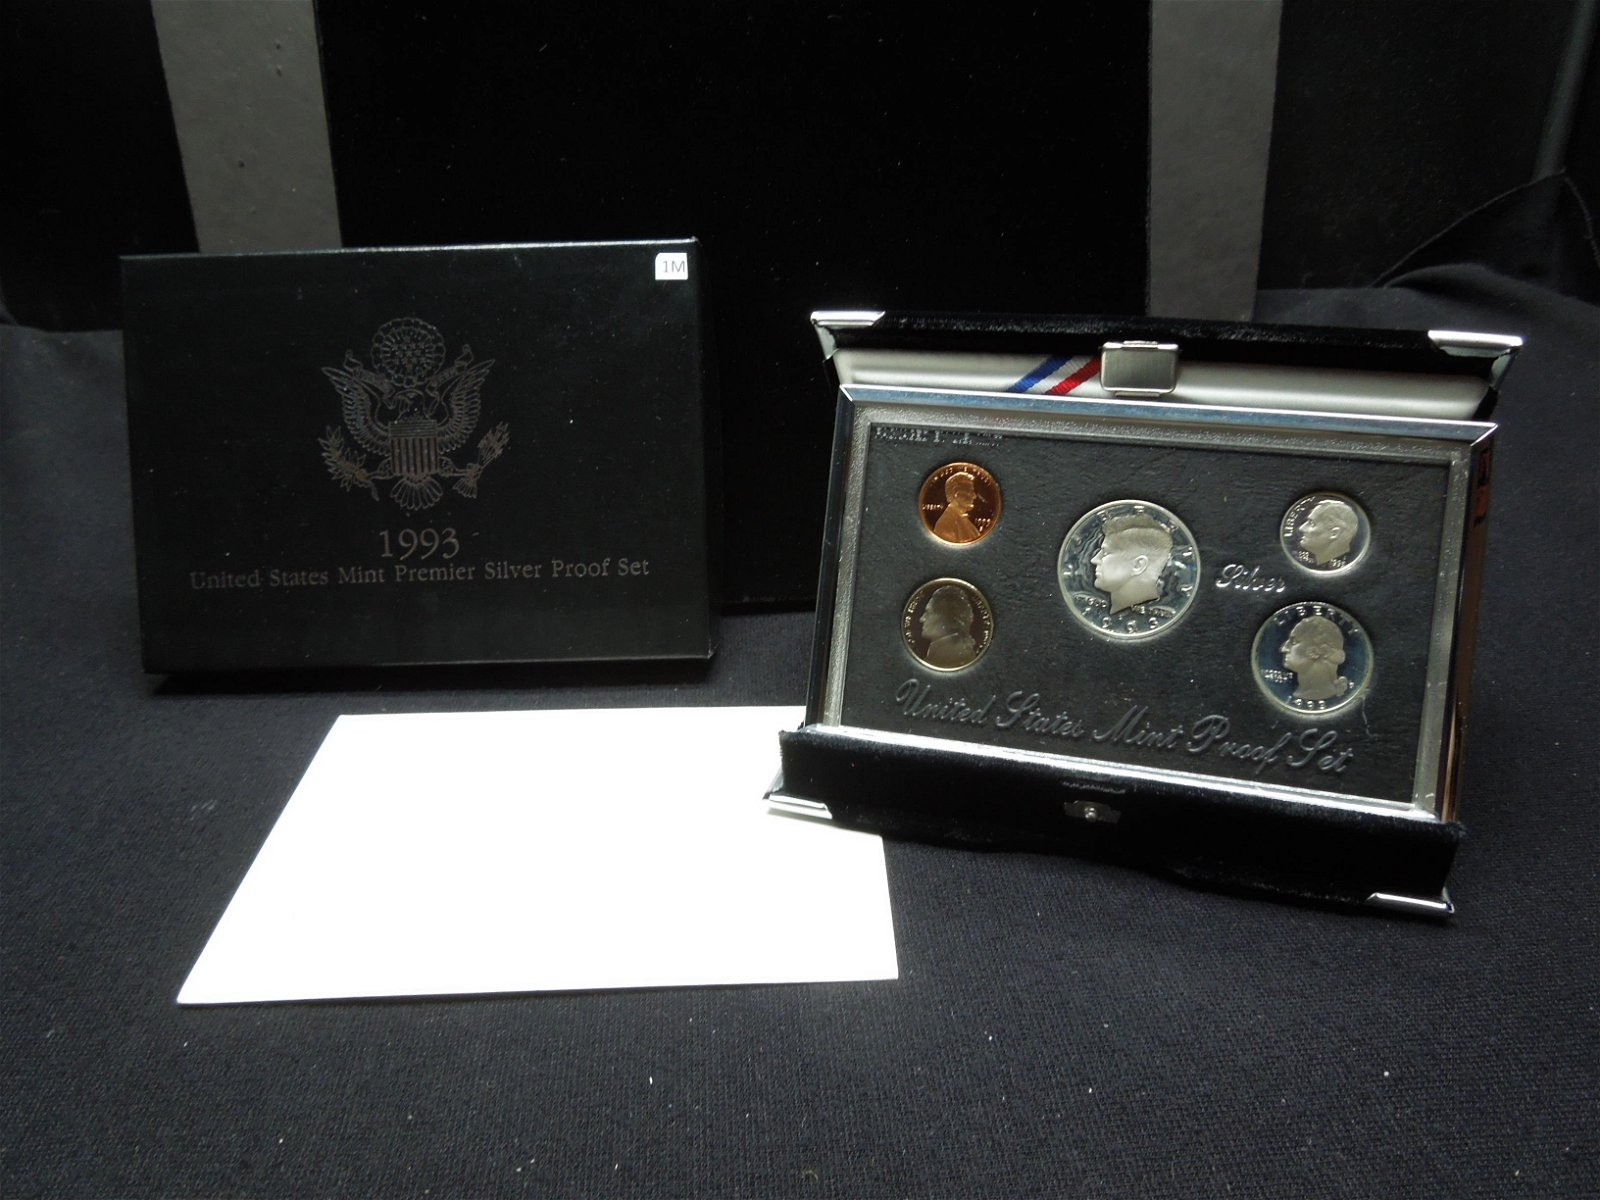 1993 United States Mint Premier Silver 5-Coin Proof Set